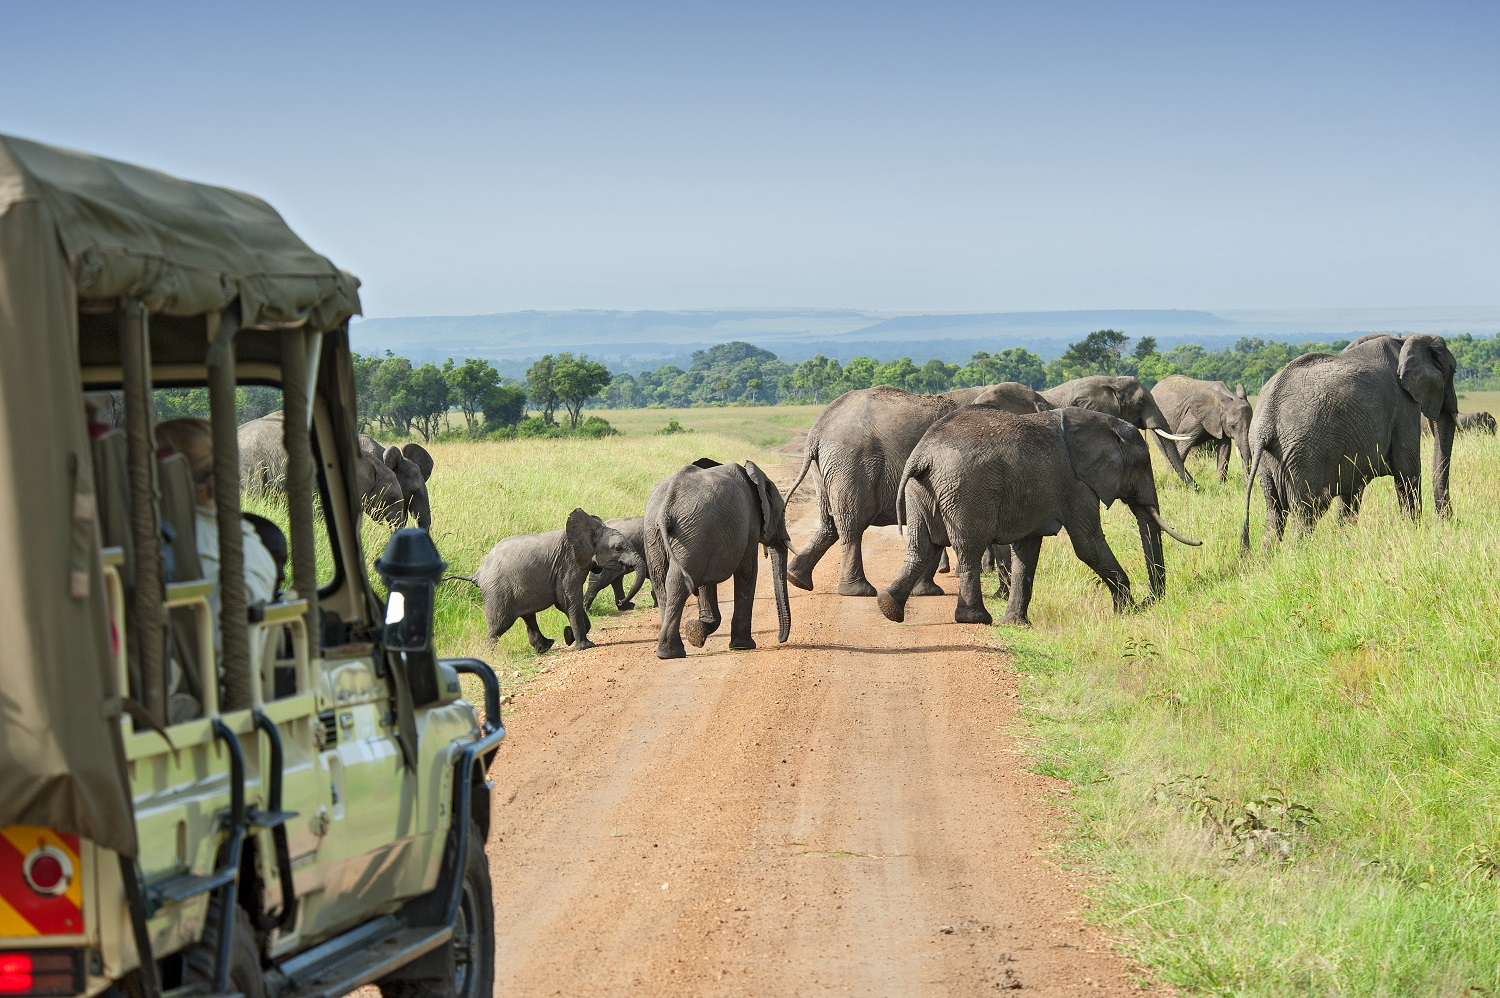 Elephants spotted on safari in South Africa